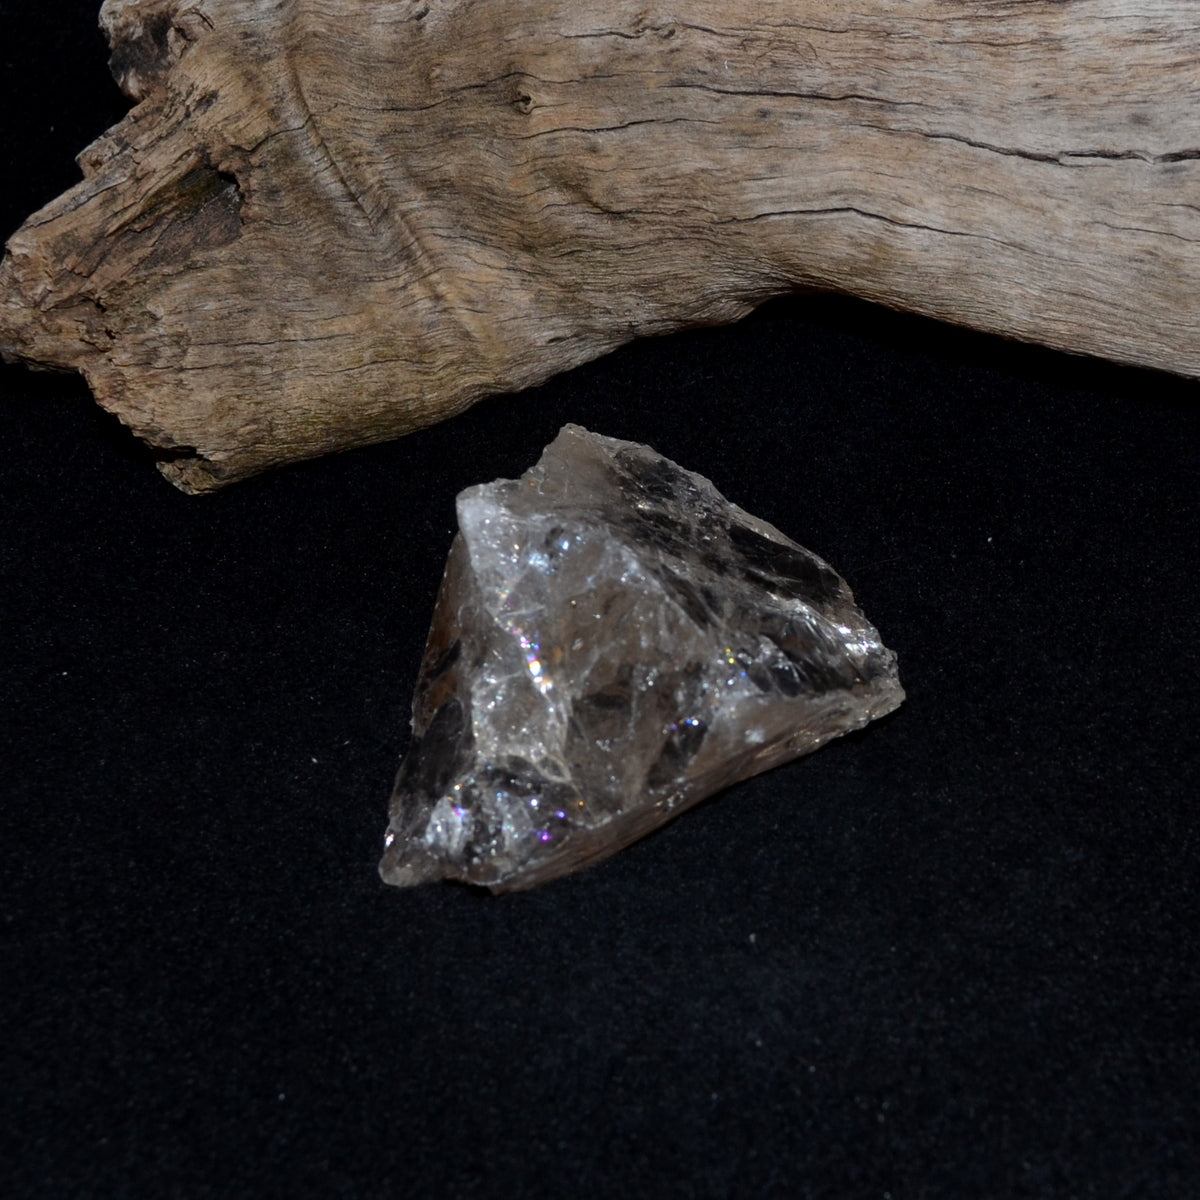 Smoky Quartz Natural Crystal - Grounding Cleansing Neutralising - Now at Illiom Crystals - We have Afterpay